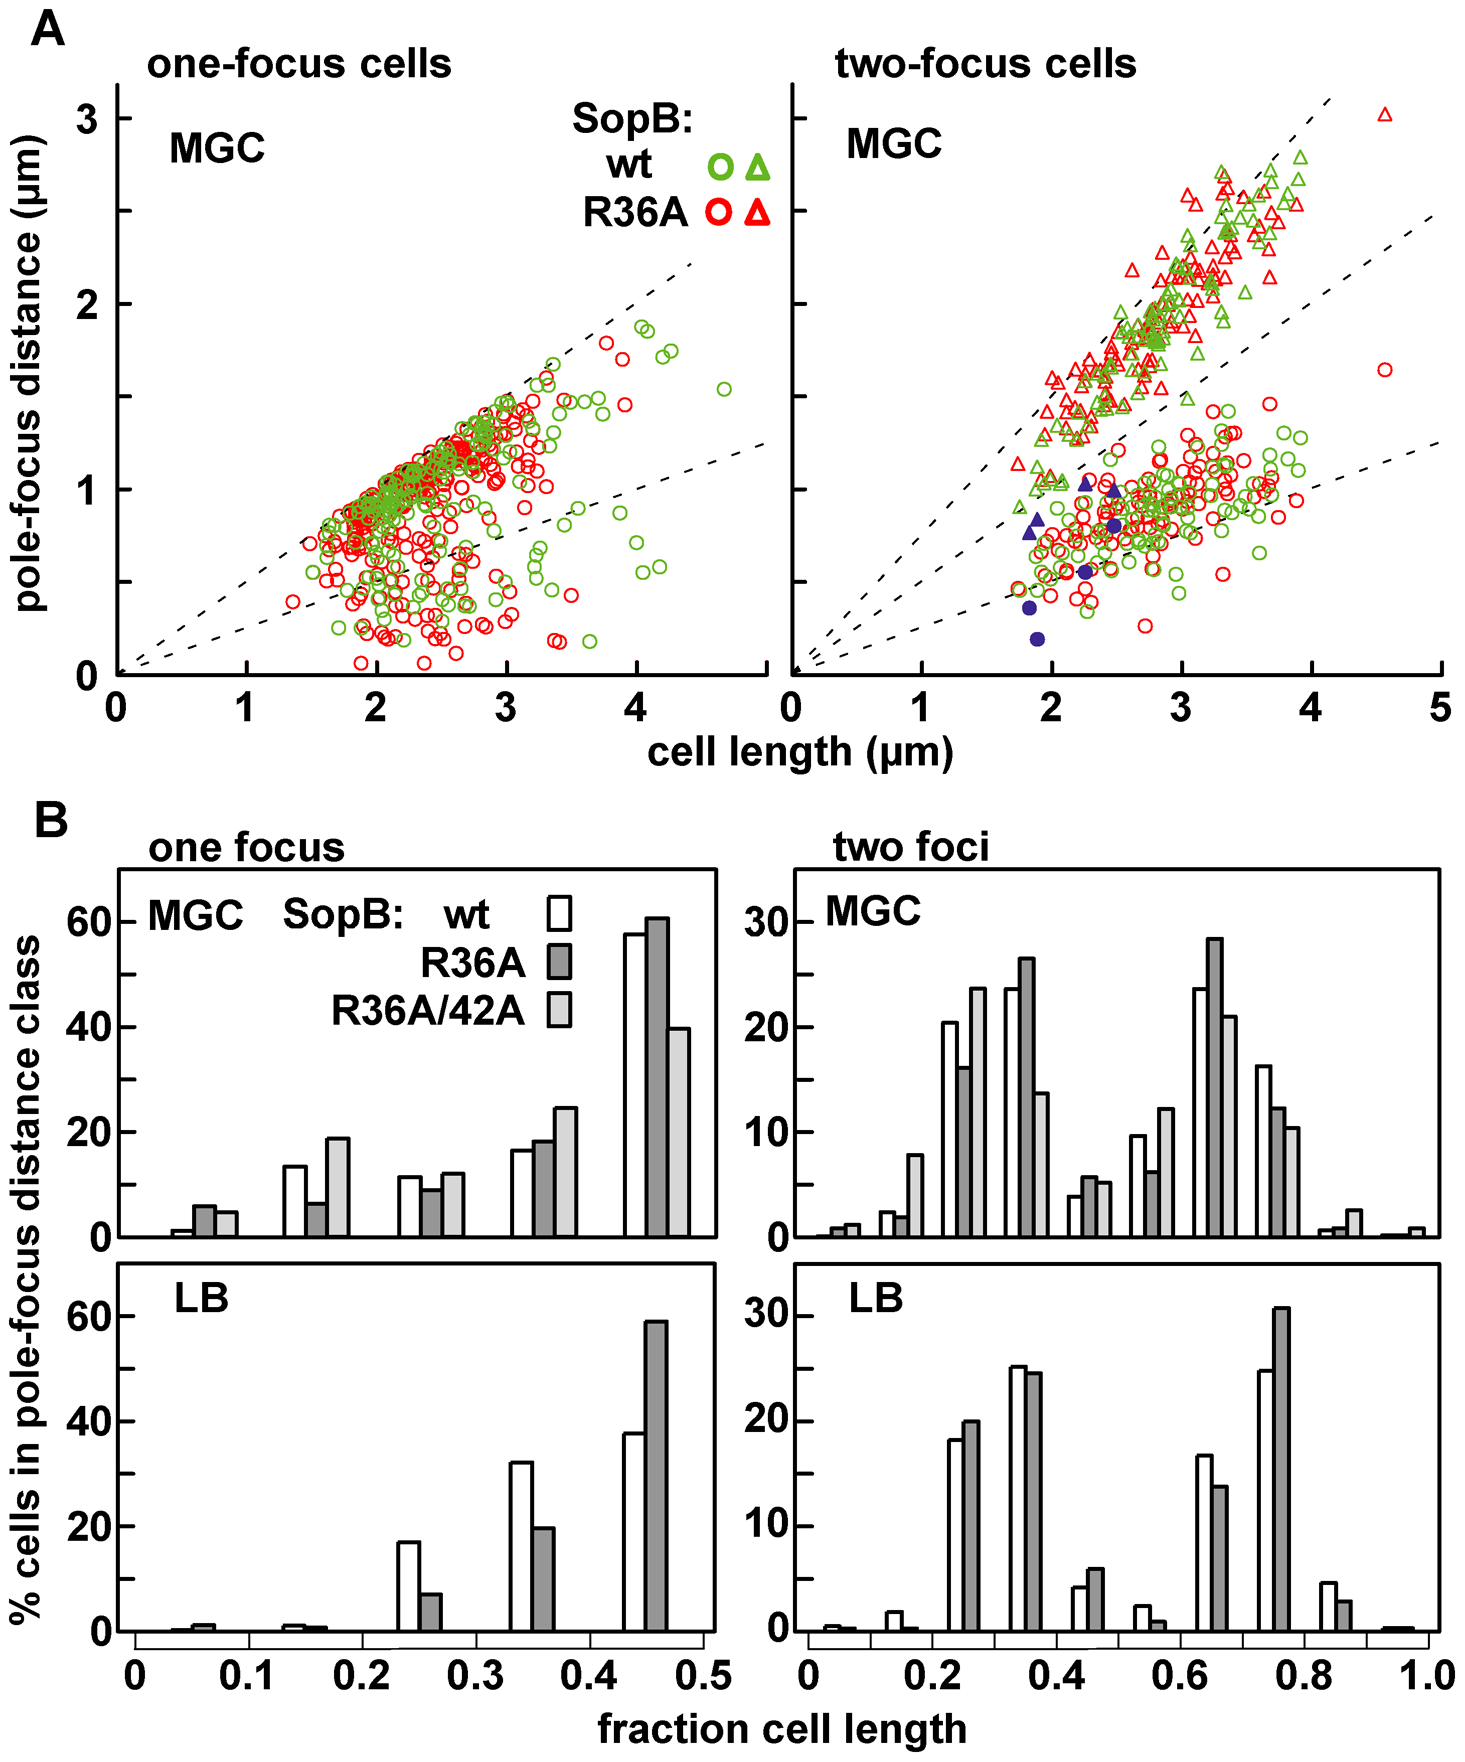 Limited effect of R36A mutation on mini-F positioning.